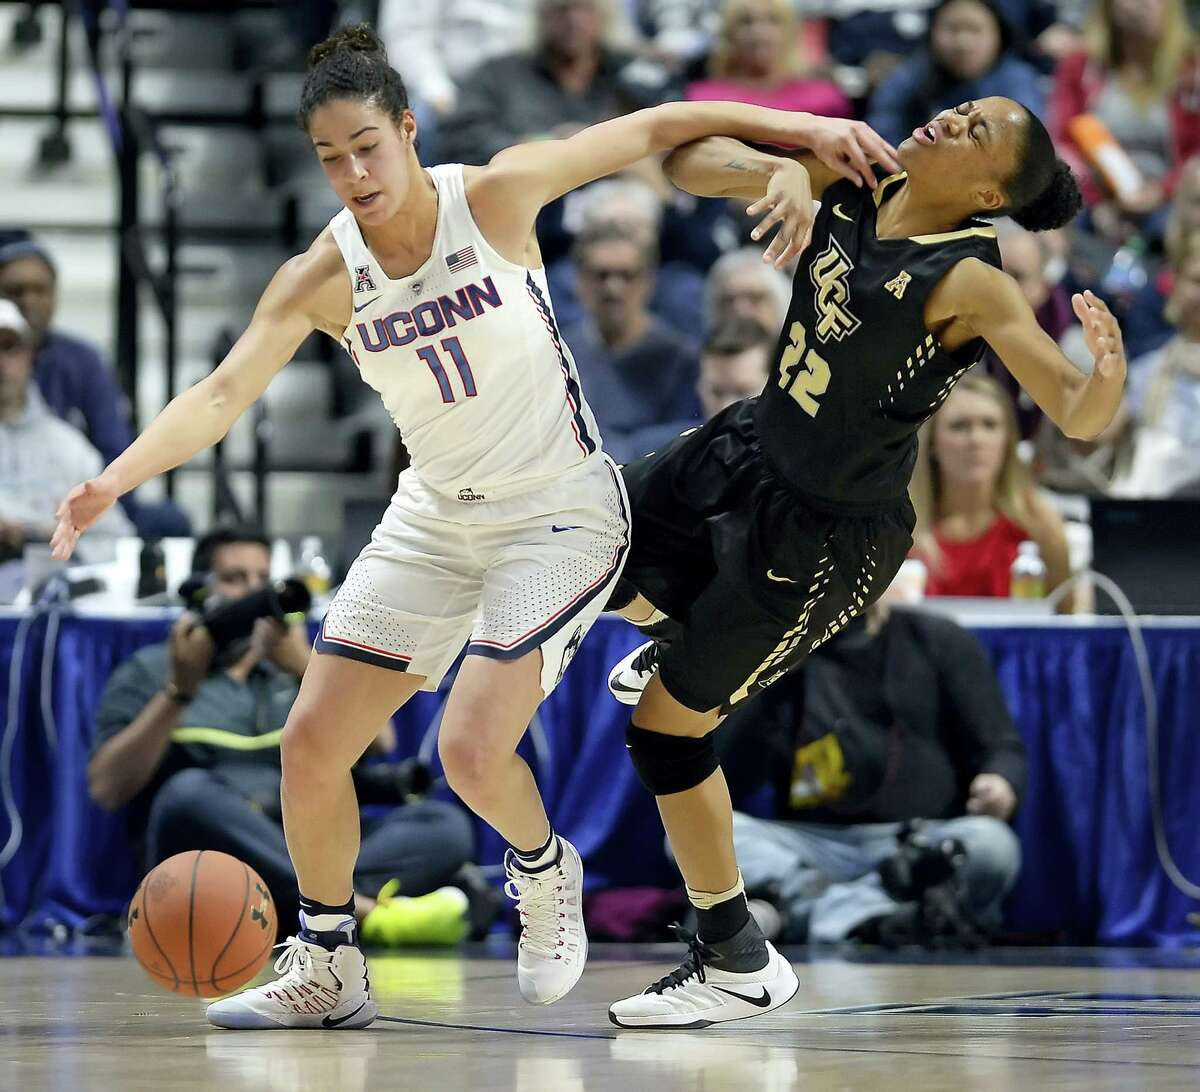 UConn's Kia Nurse, left, and Central Florida's Aliyah Gregory, right, battle for a loose ball during the first half Sunday in an AAC semifinal at Mohegan Sun Arena in Uncasville.